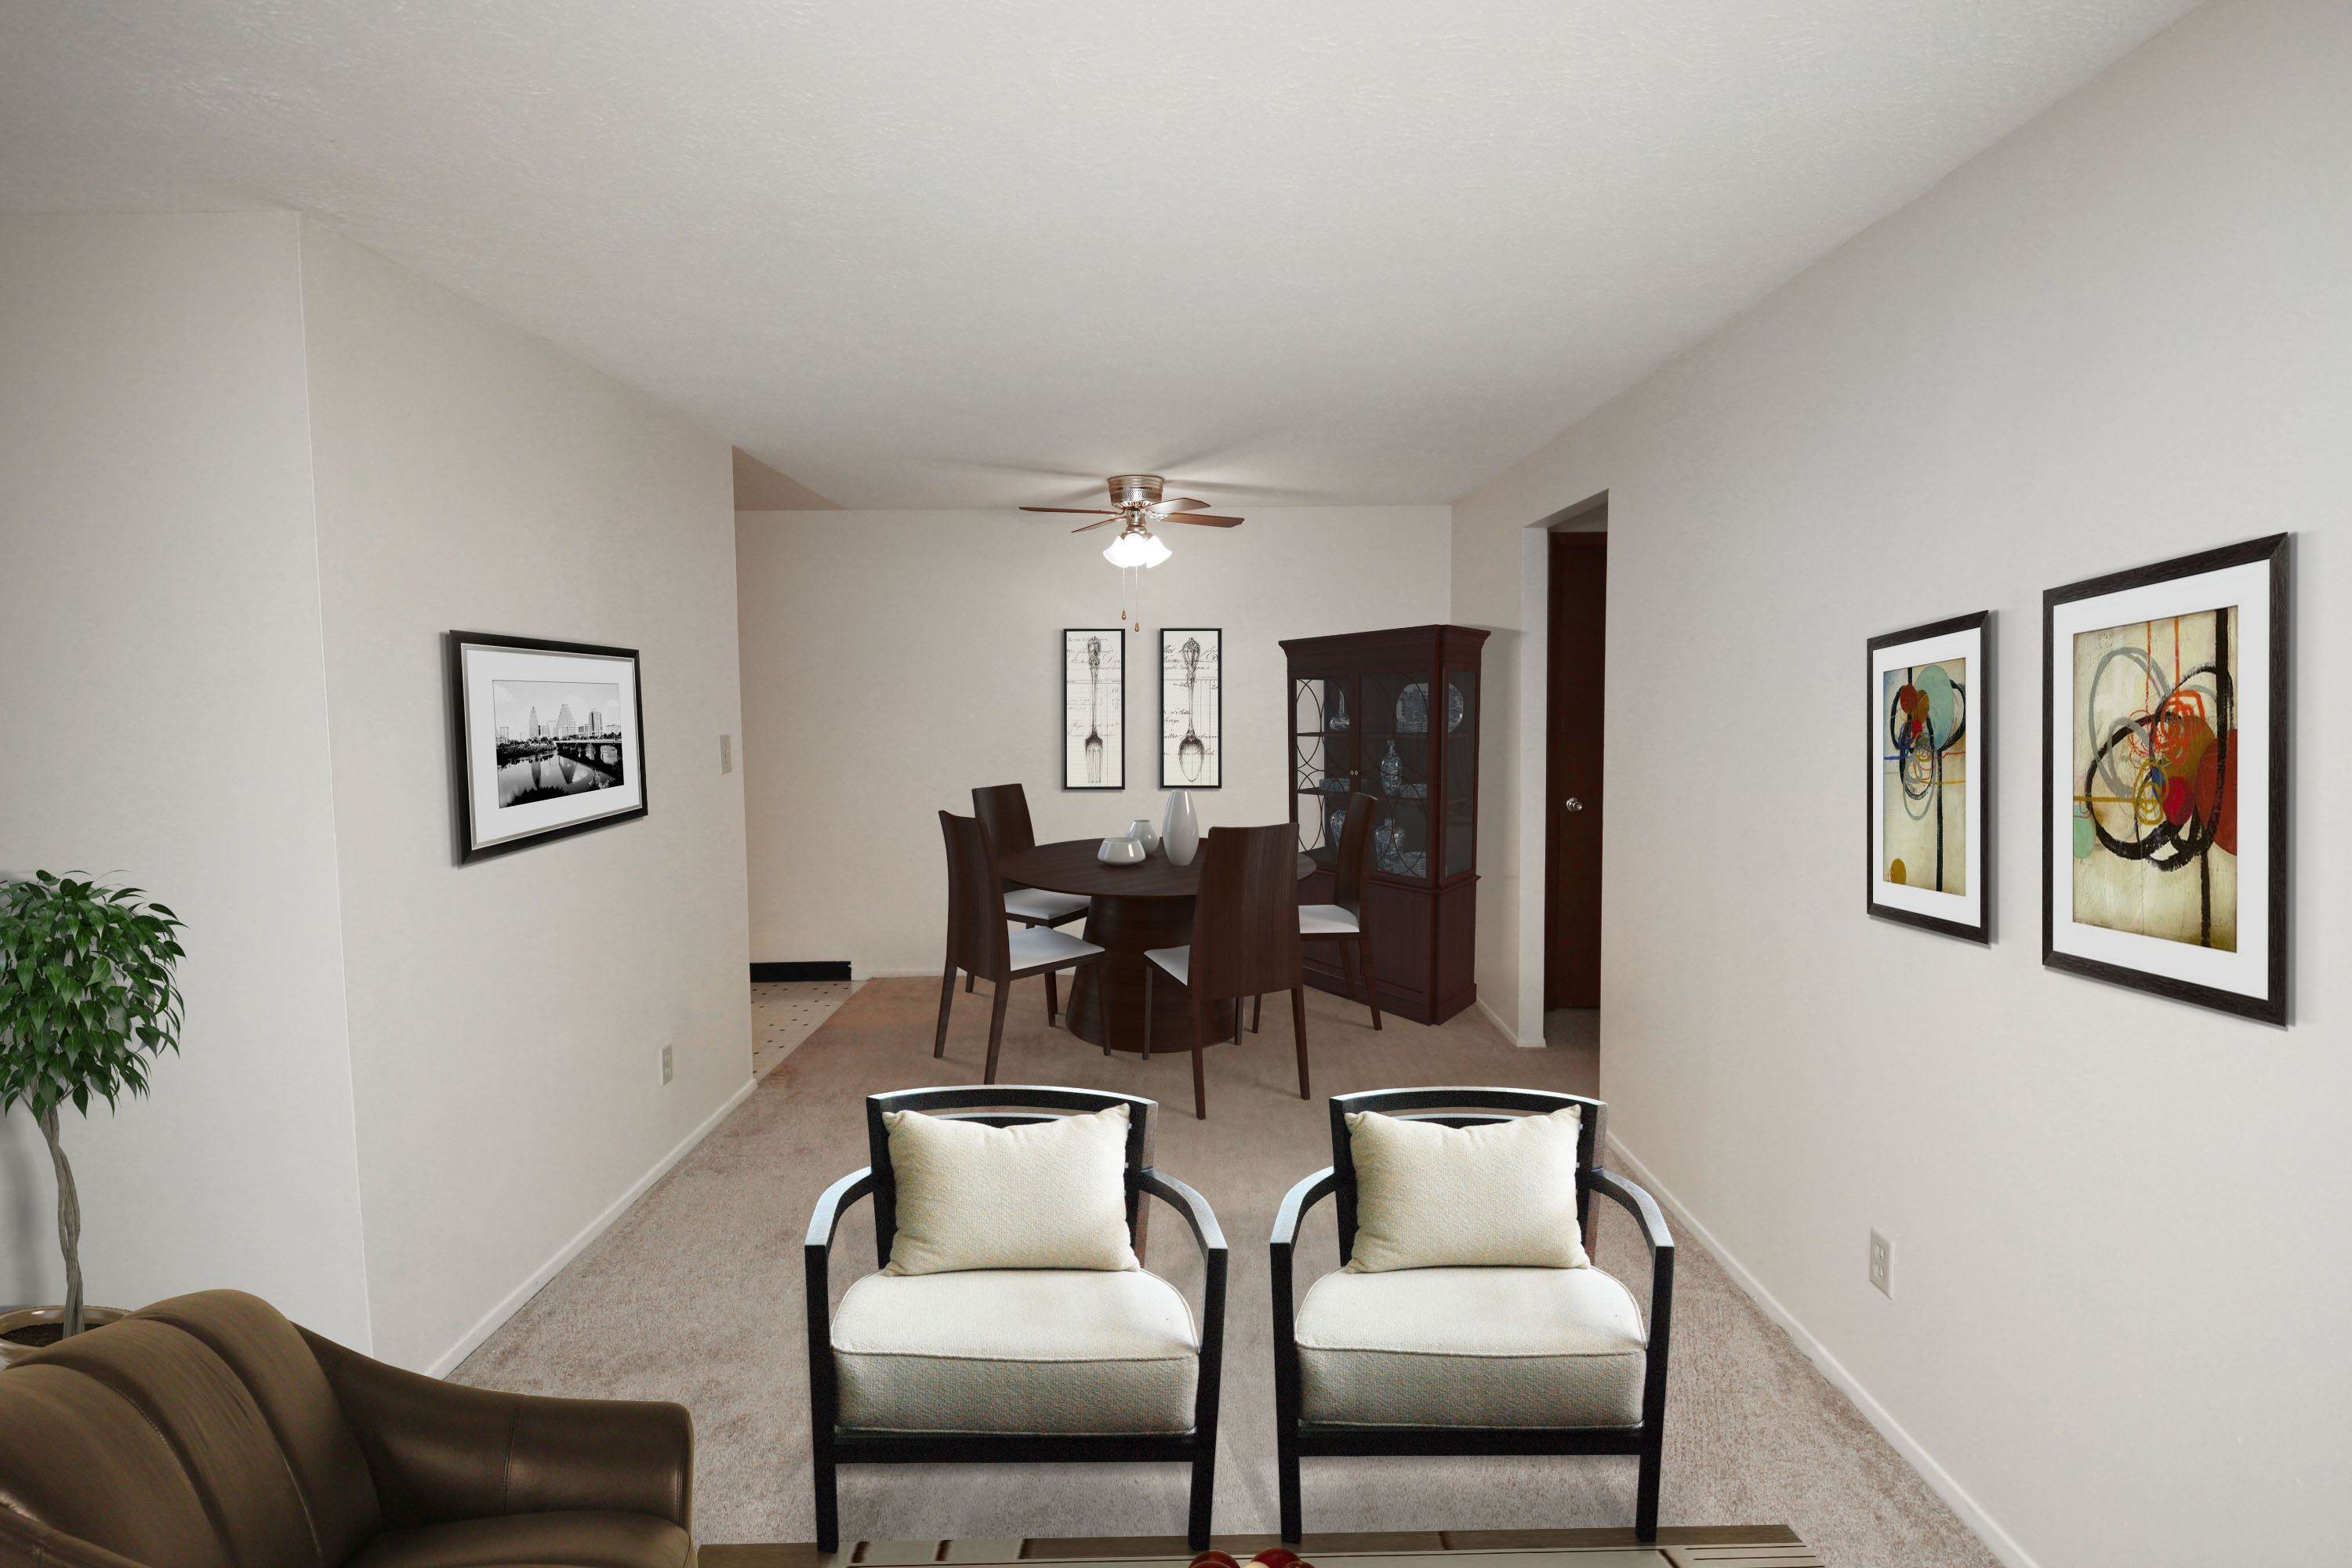 2C Living / Dining Room Furnished at the Greenridge on Euclid Apartments in Euclid, OH